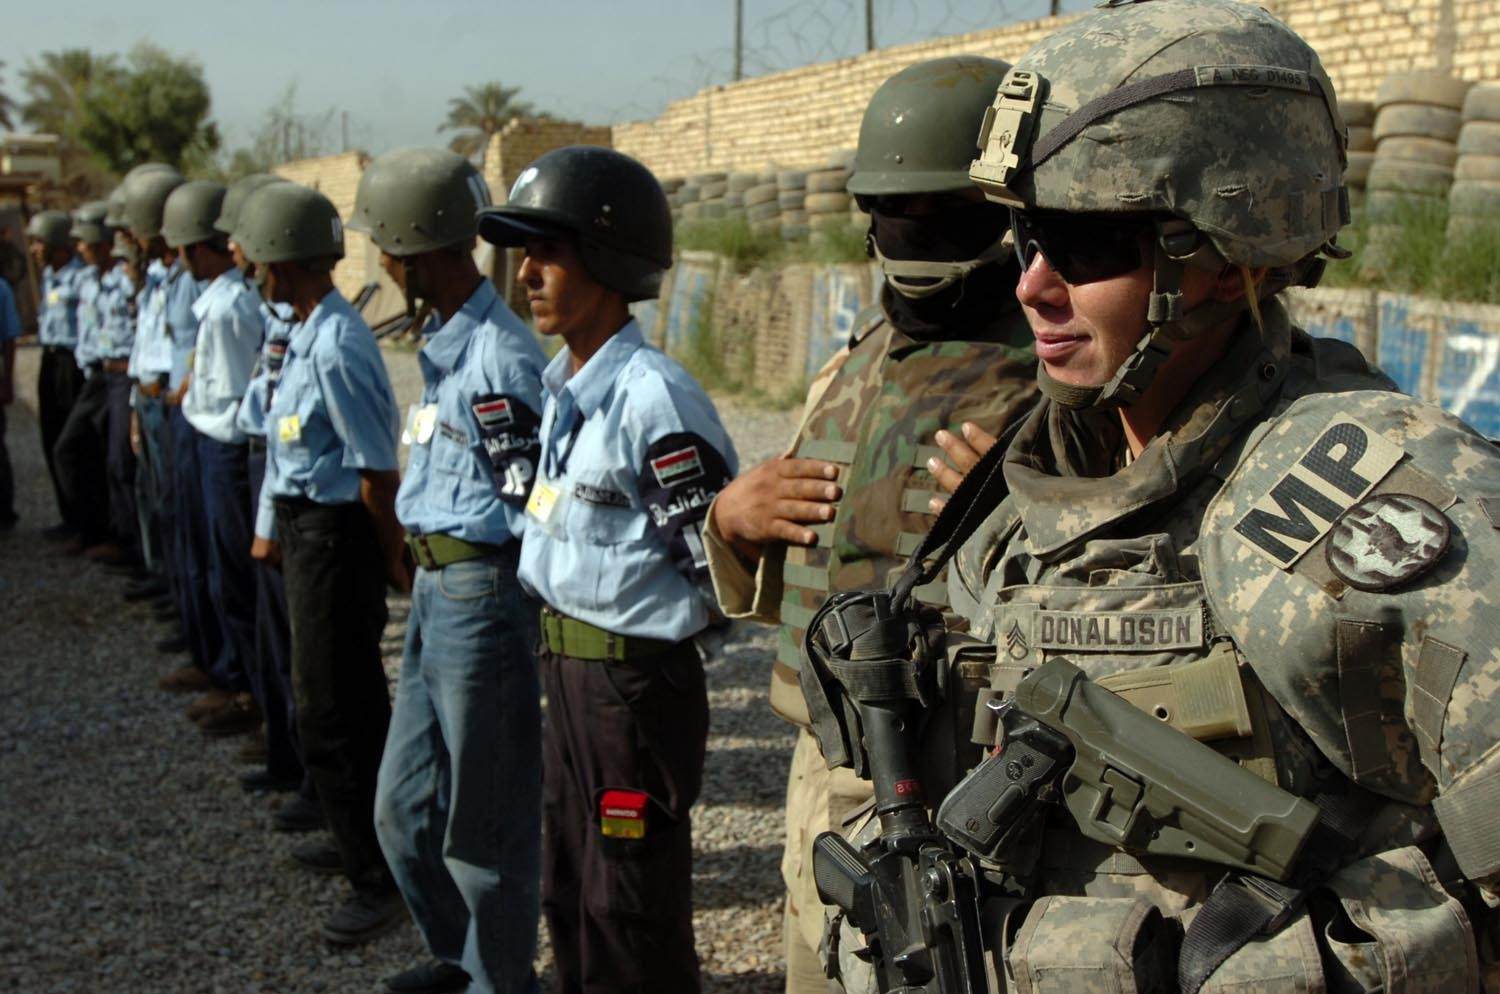 Staff Sgt. Erin Donaldson, an adviser to Iraqi police in Baqubah during The Surge in 2007. U.S. Army photo